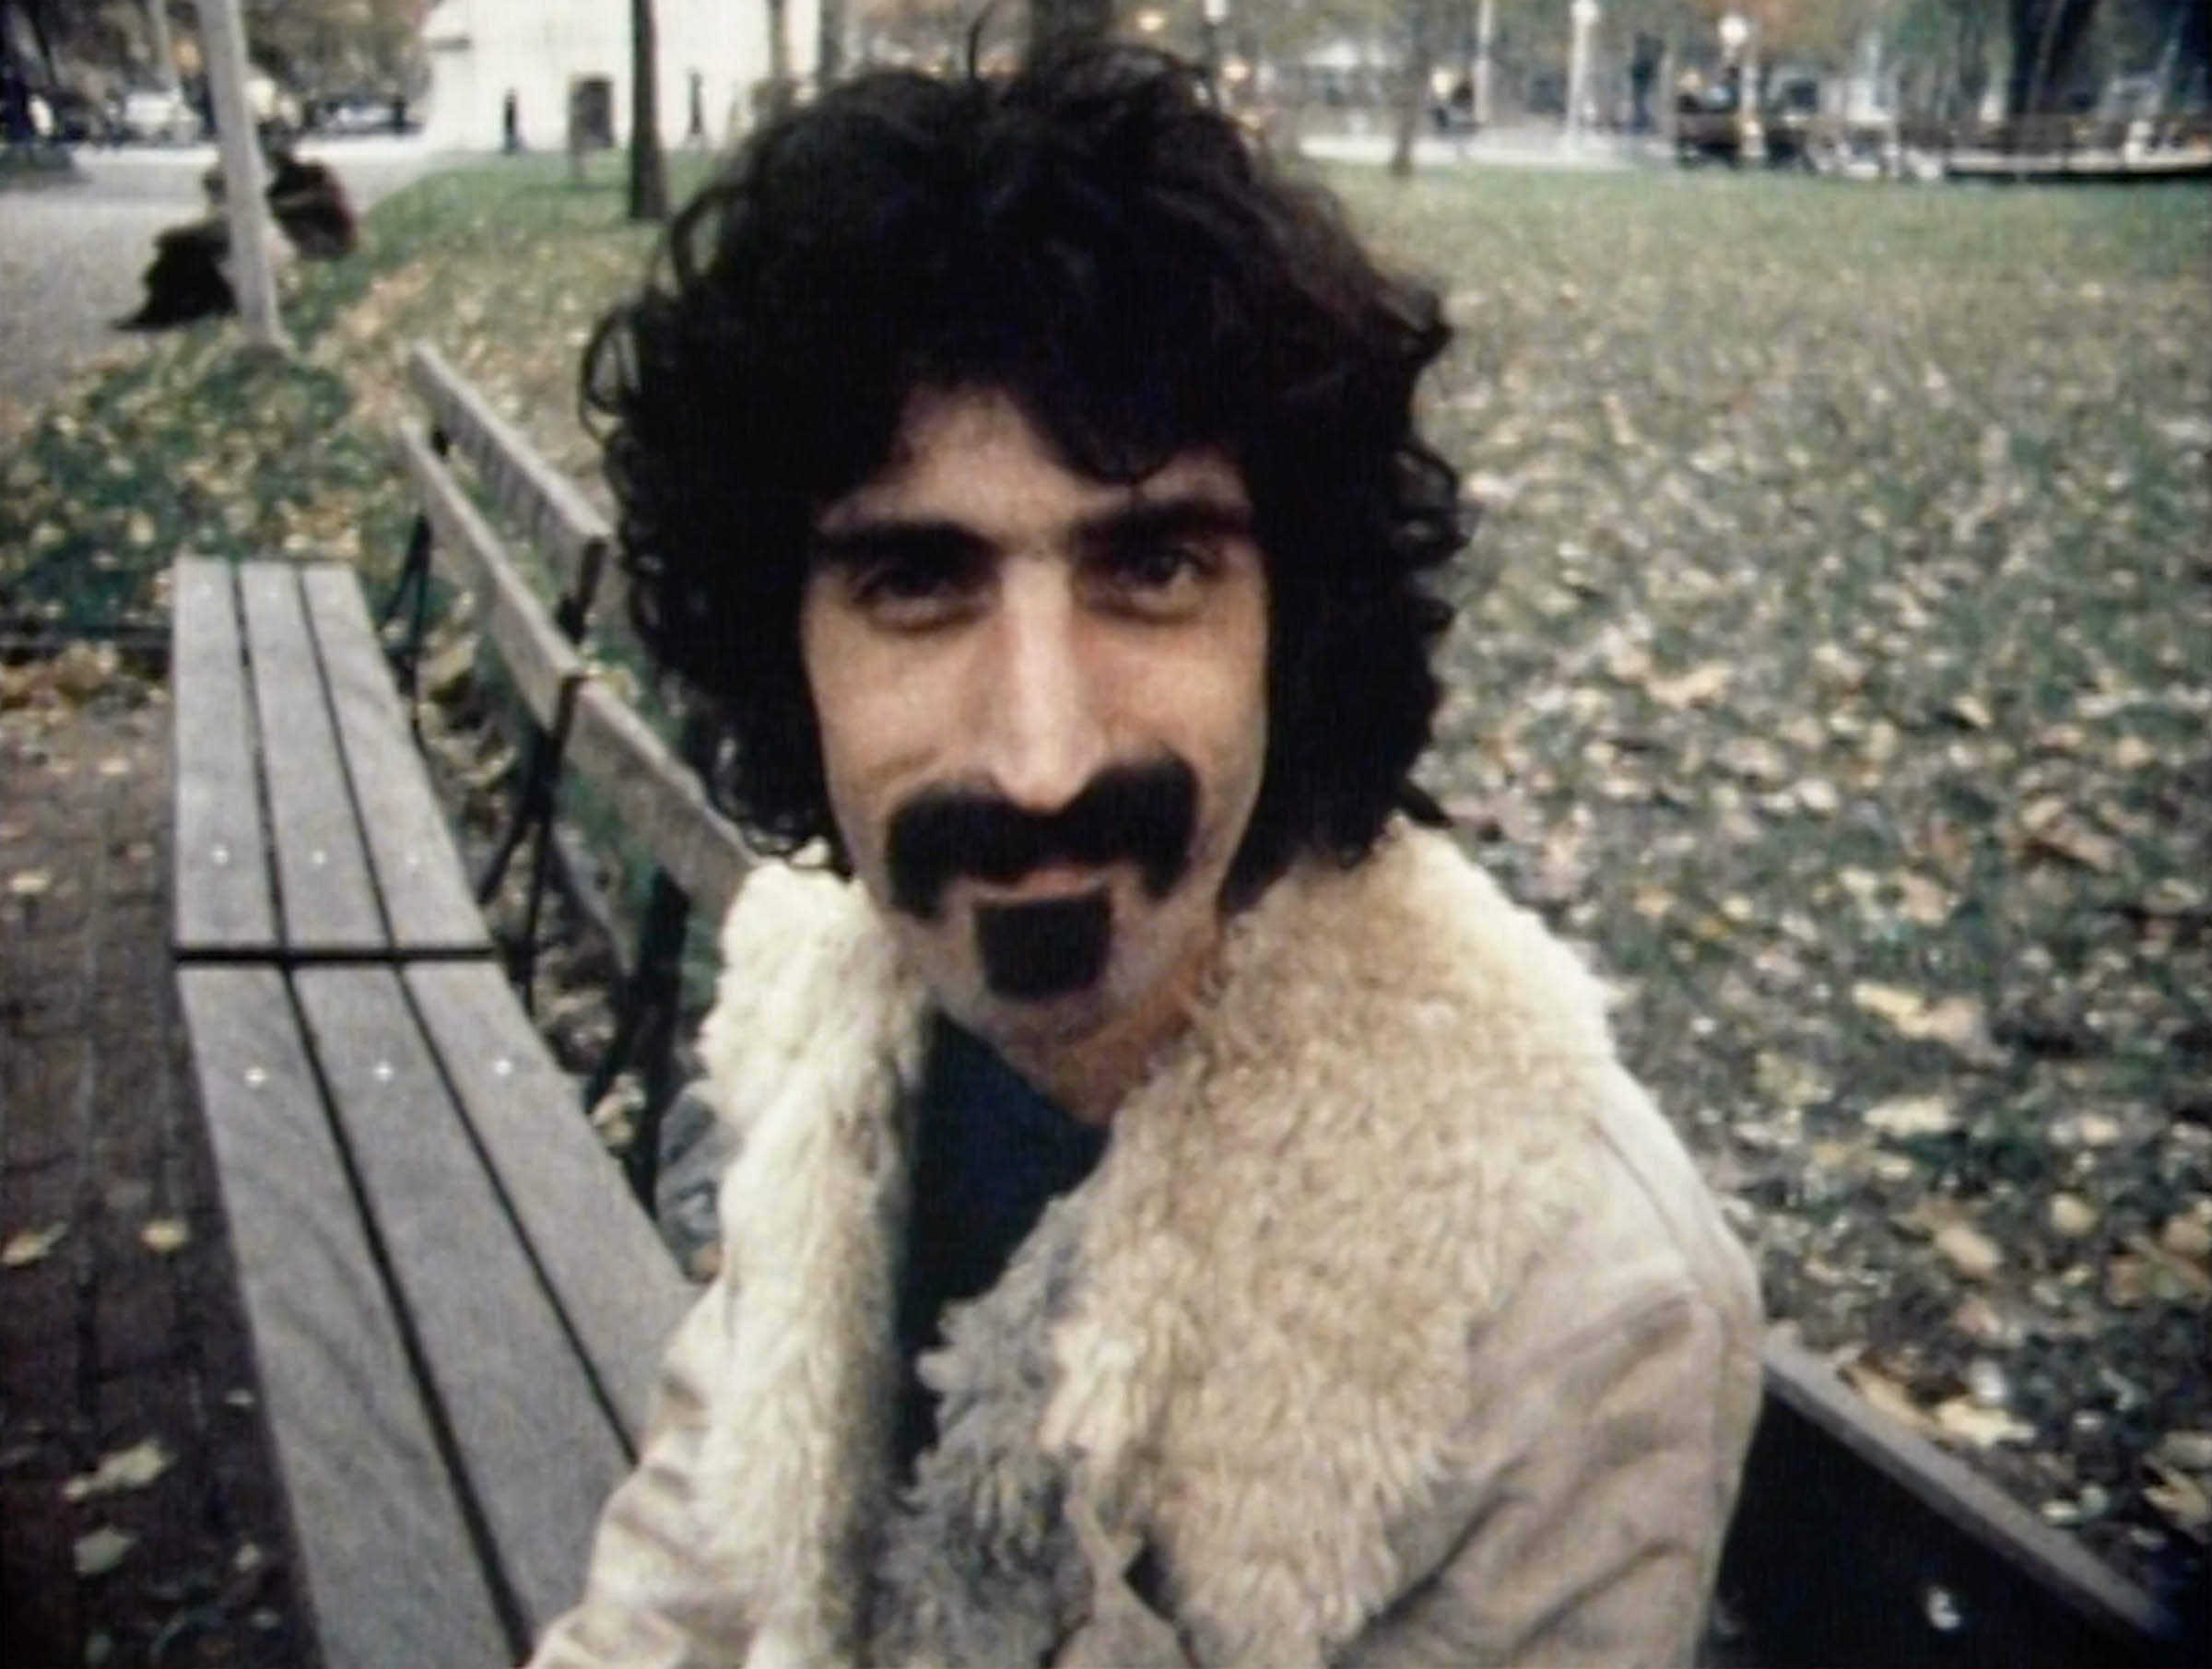 WATCH the official trailer for ZAPPA, directed by Alex Winter 1